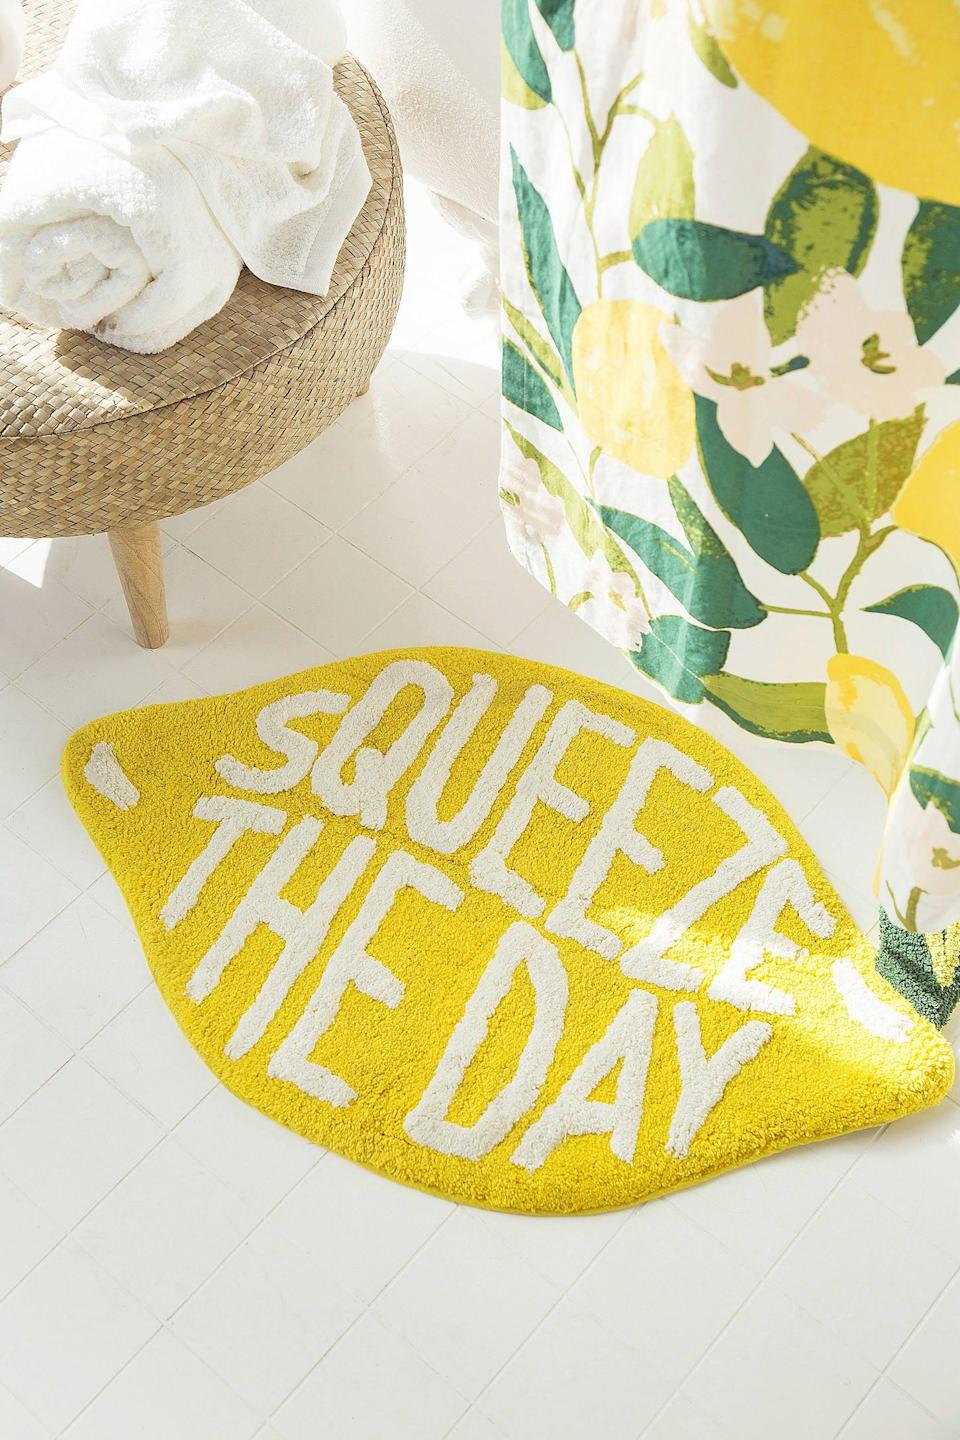 """<br> <br> <strong>Urban Outfitters</strong> Squeeze The Day Bath Mat, $, available at <a href=""""https://go.skimresources.com/?id=30283X879131&url=https%3A%2F%2Fwww.urbanoutfitters.com%2Fshop%2Fsqueeze-the-day-bath-mat"""" rel=""""nofollow noopener"""" target=""""_blank"""" data-ylk=""""slk:Urban Outfitters"""" class=""""link rapid-noclick-resp"""">Urban Outfitters</a>"""